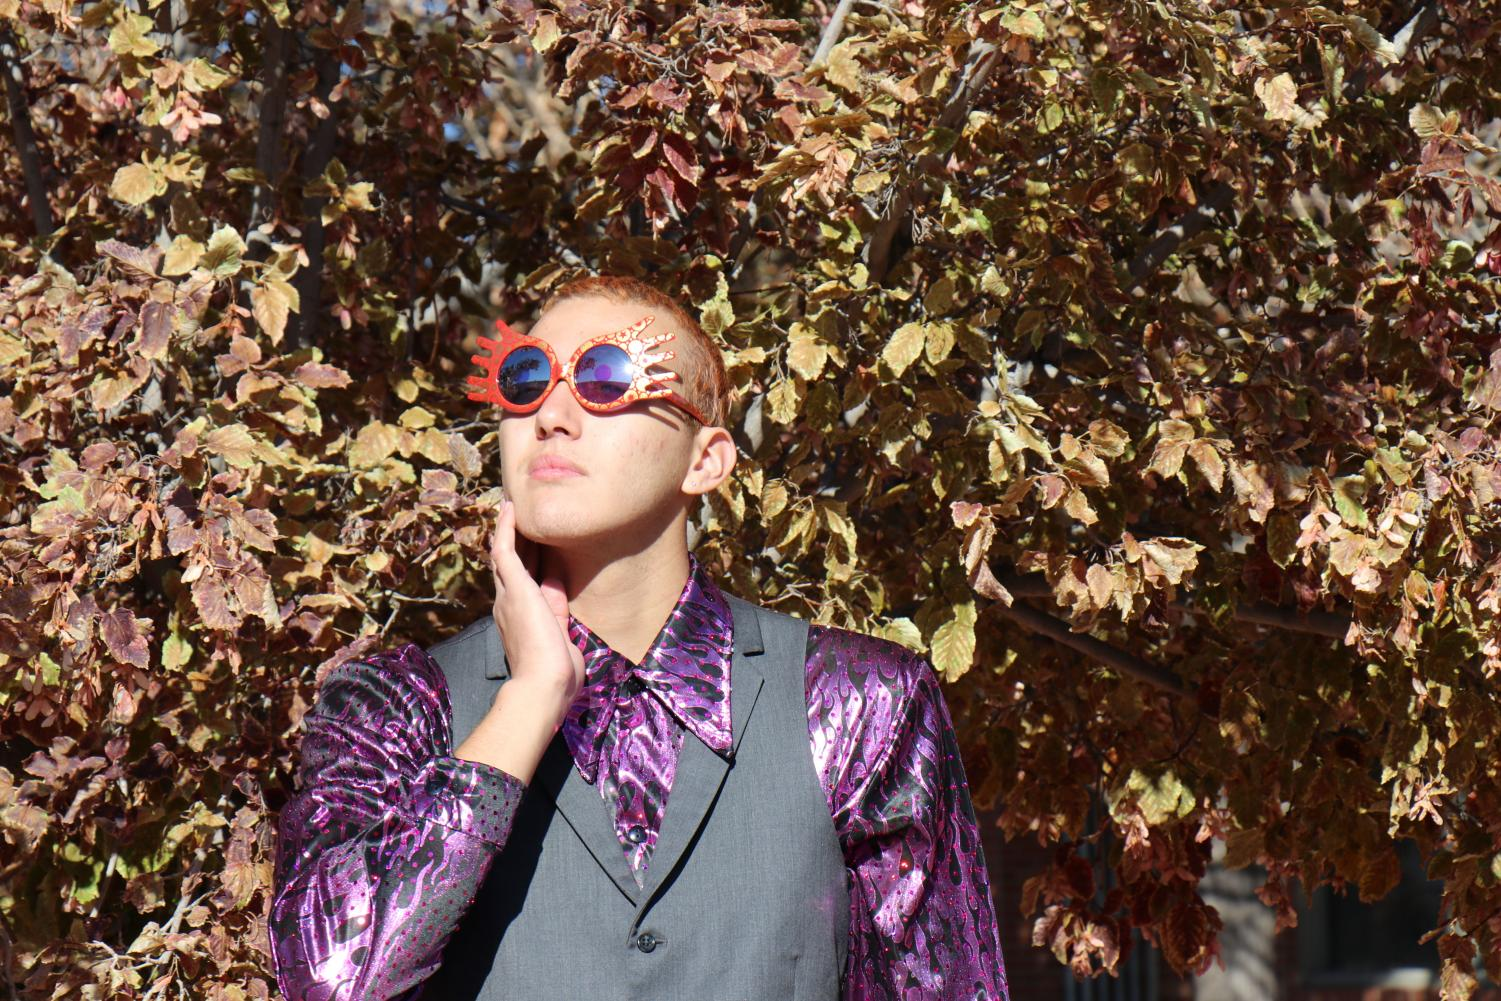 """His fashion is inspired by Elton John's colorful, outrageous clothes that make a statement about himself and consults with Raine Foor, a close friend and fellow fashionista. """"I want people to see me as me and I want to express myself and be colorful and vibrant...I don't need to be a different person to be confident in myself,"""" DeCrow said."""